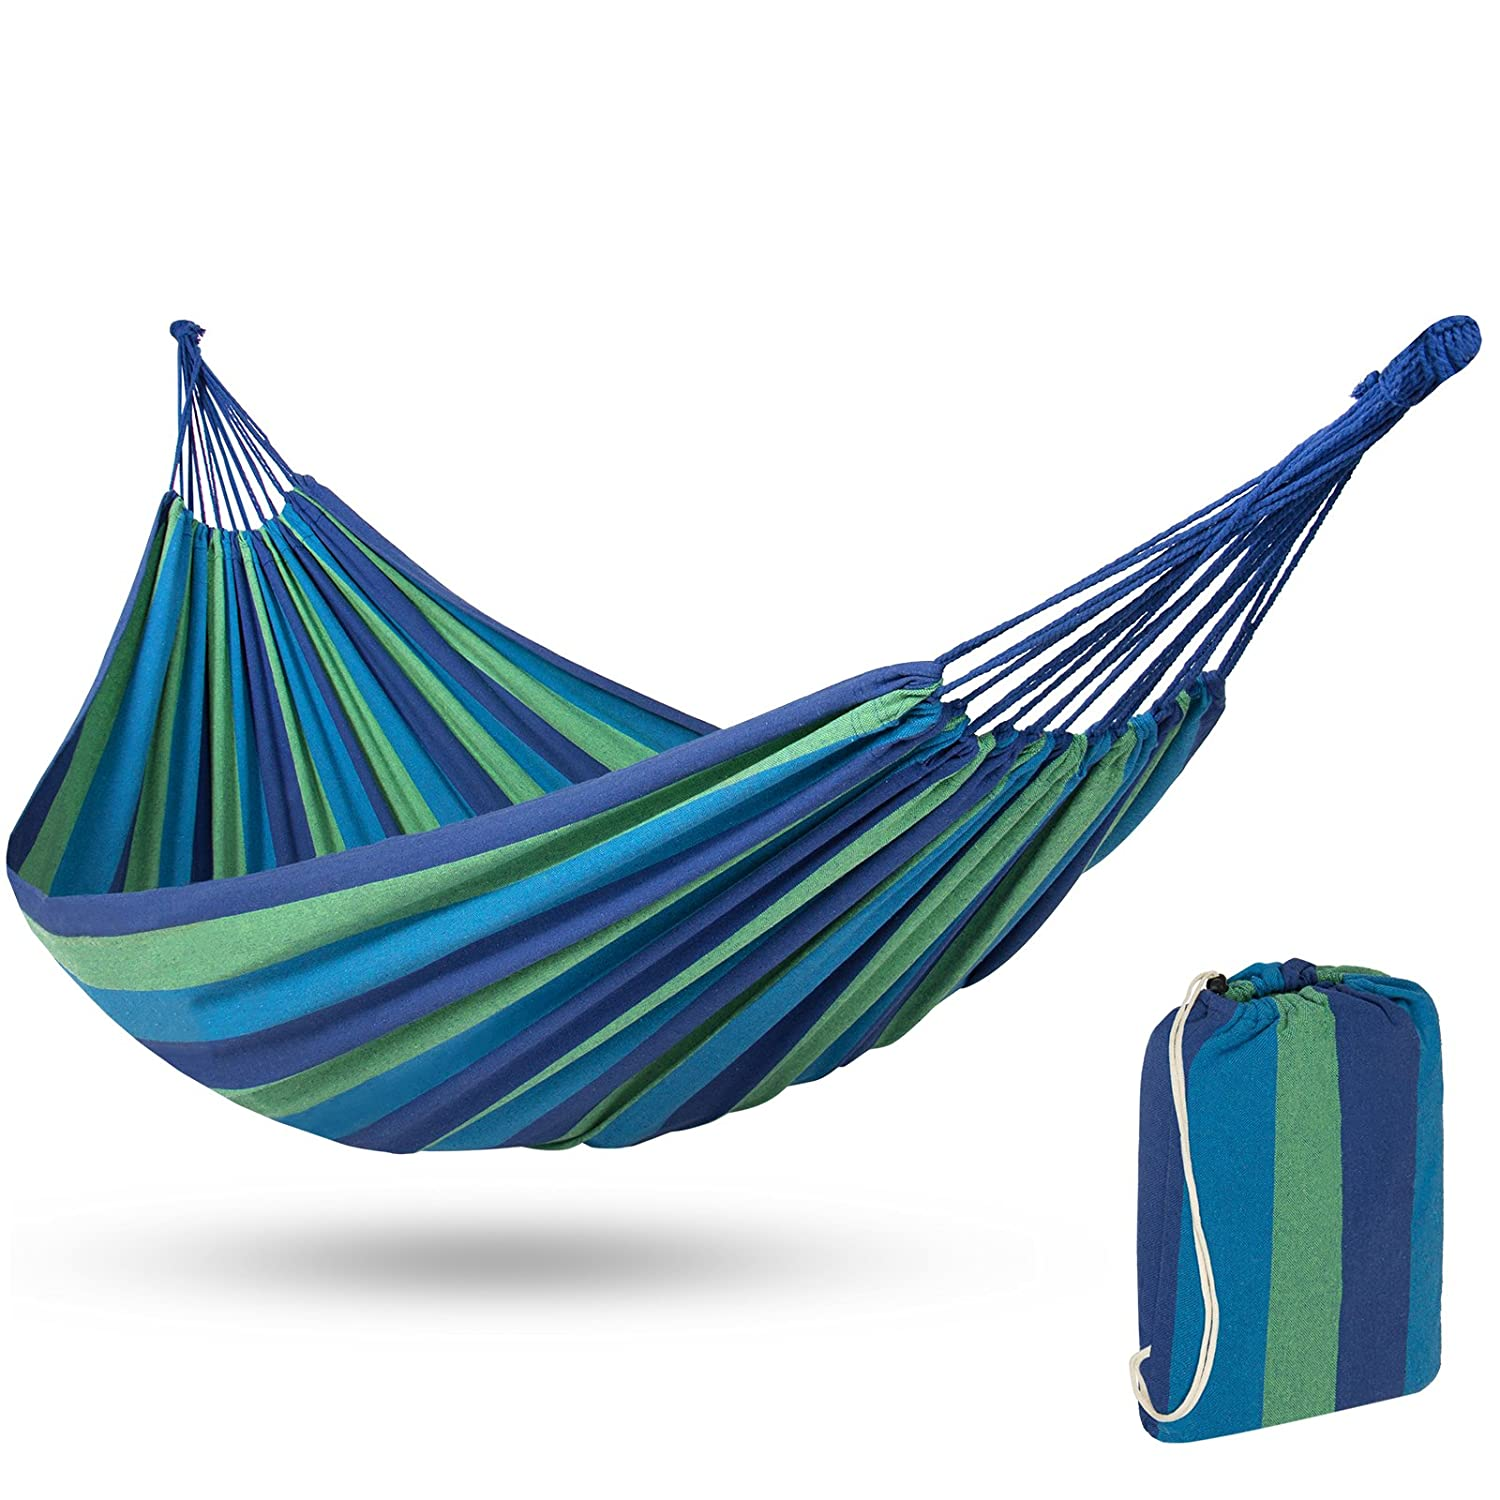 Best Choice Products 2-Person Brazilian Double Hammock Bed w Carrying Bag for Backyard, Patio, Indoor Outdoor Use, Cross-Woven Cotton Fabric for Comfort – Blue